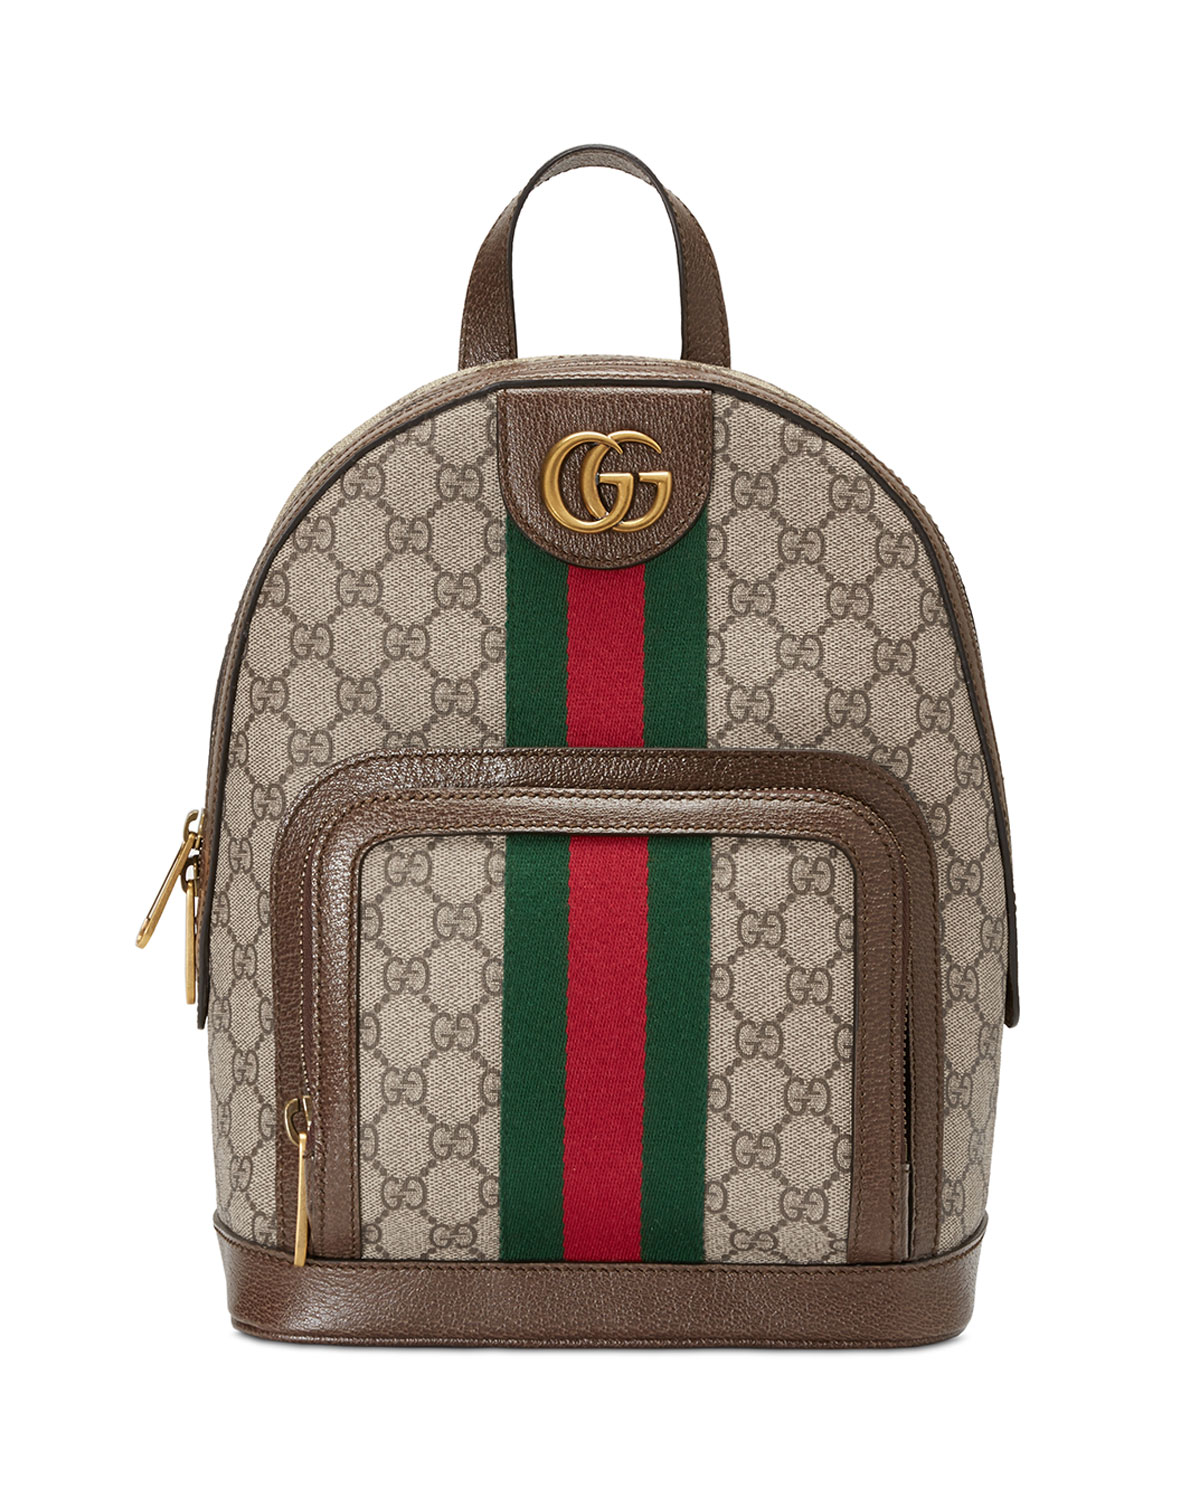 2526dbb82c33 Gucci Ophidia GG Supreme Canvas Backpack